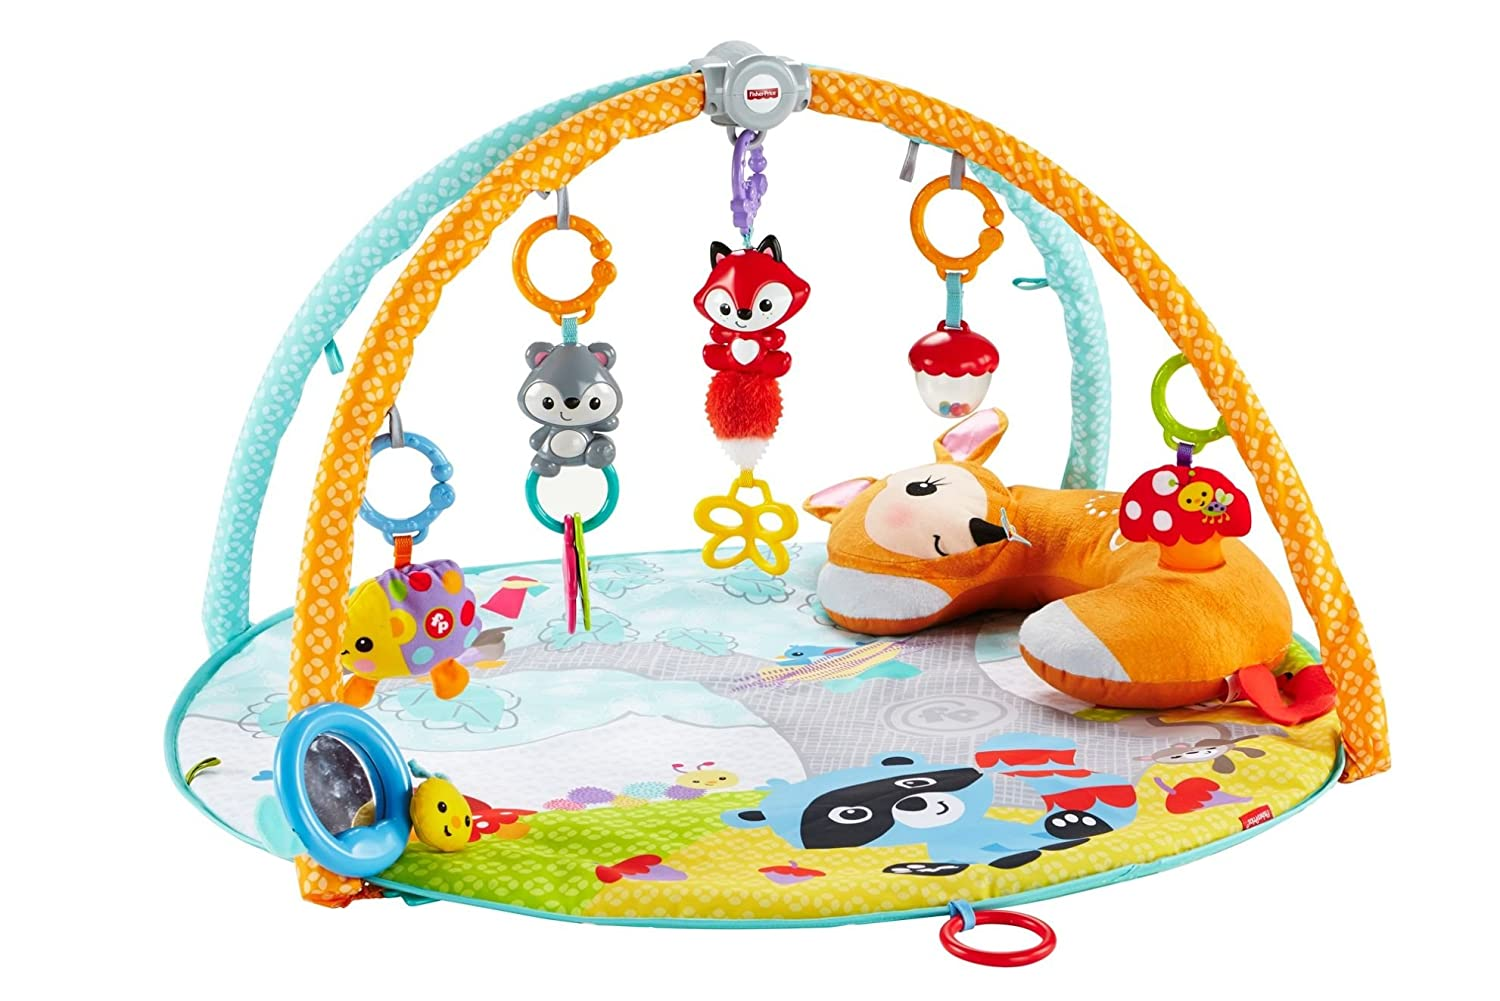 e9d26f36e Fisher-Price CLJ47 Moonlight Meadow Deluxe Play Gym  Amazon.co.uk  Baby